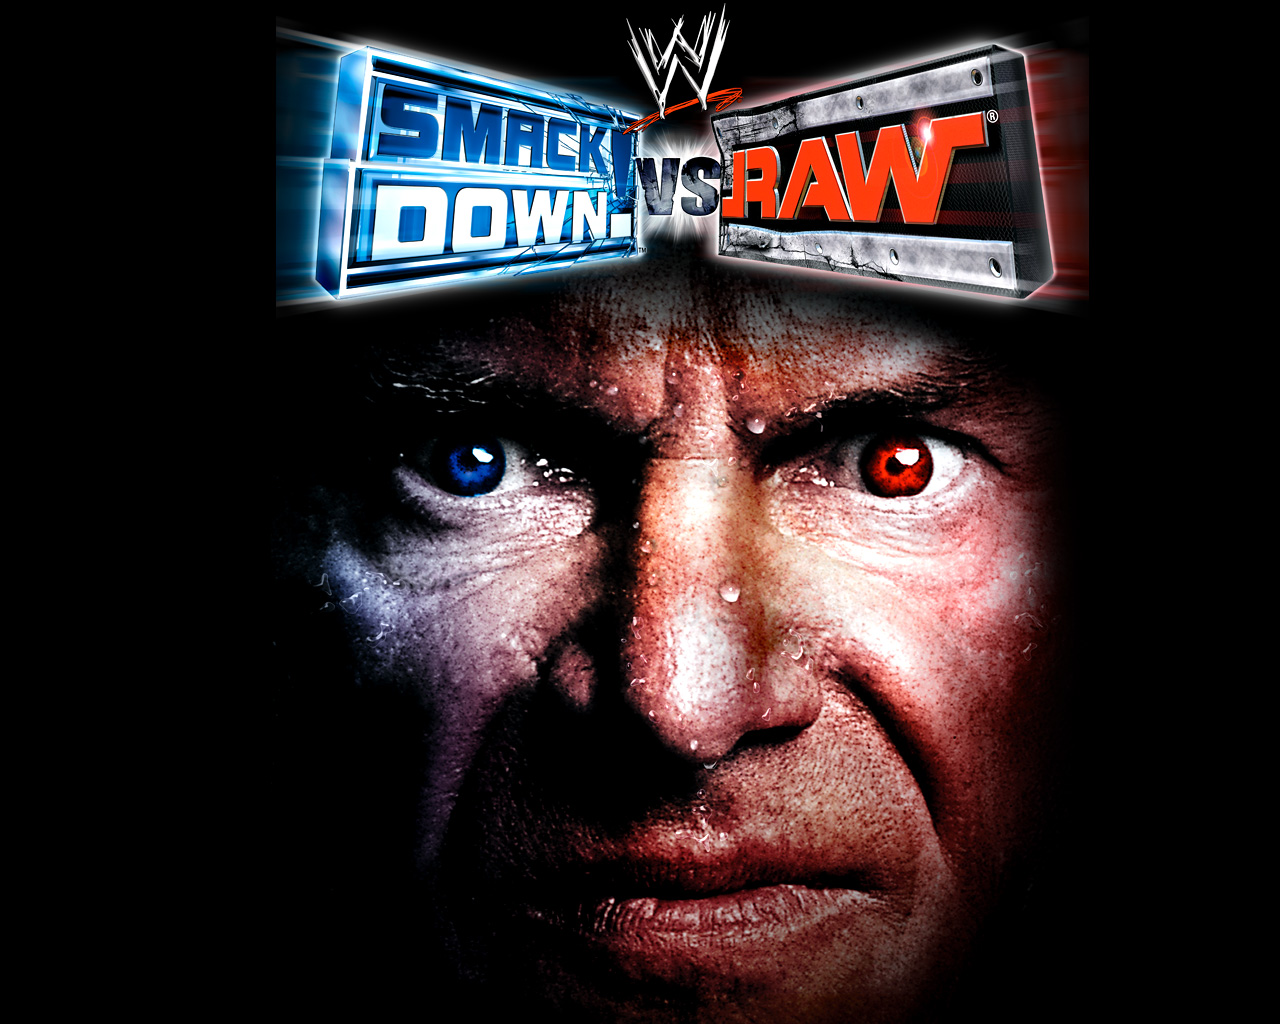 Wwe Dx Hd Wallpaper Vince Mcmahon Wallpapers Wwe Wrestling Wallpapers